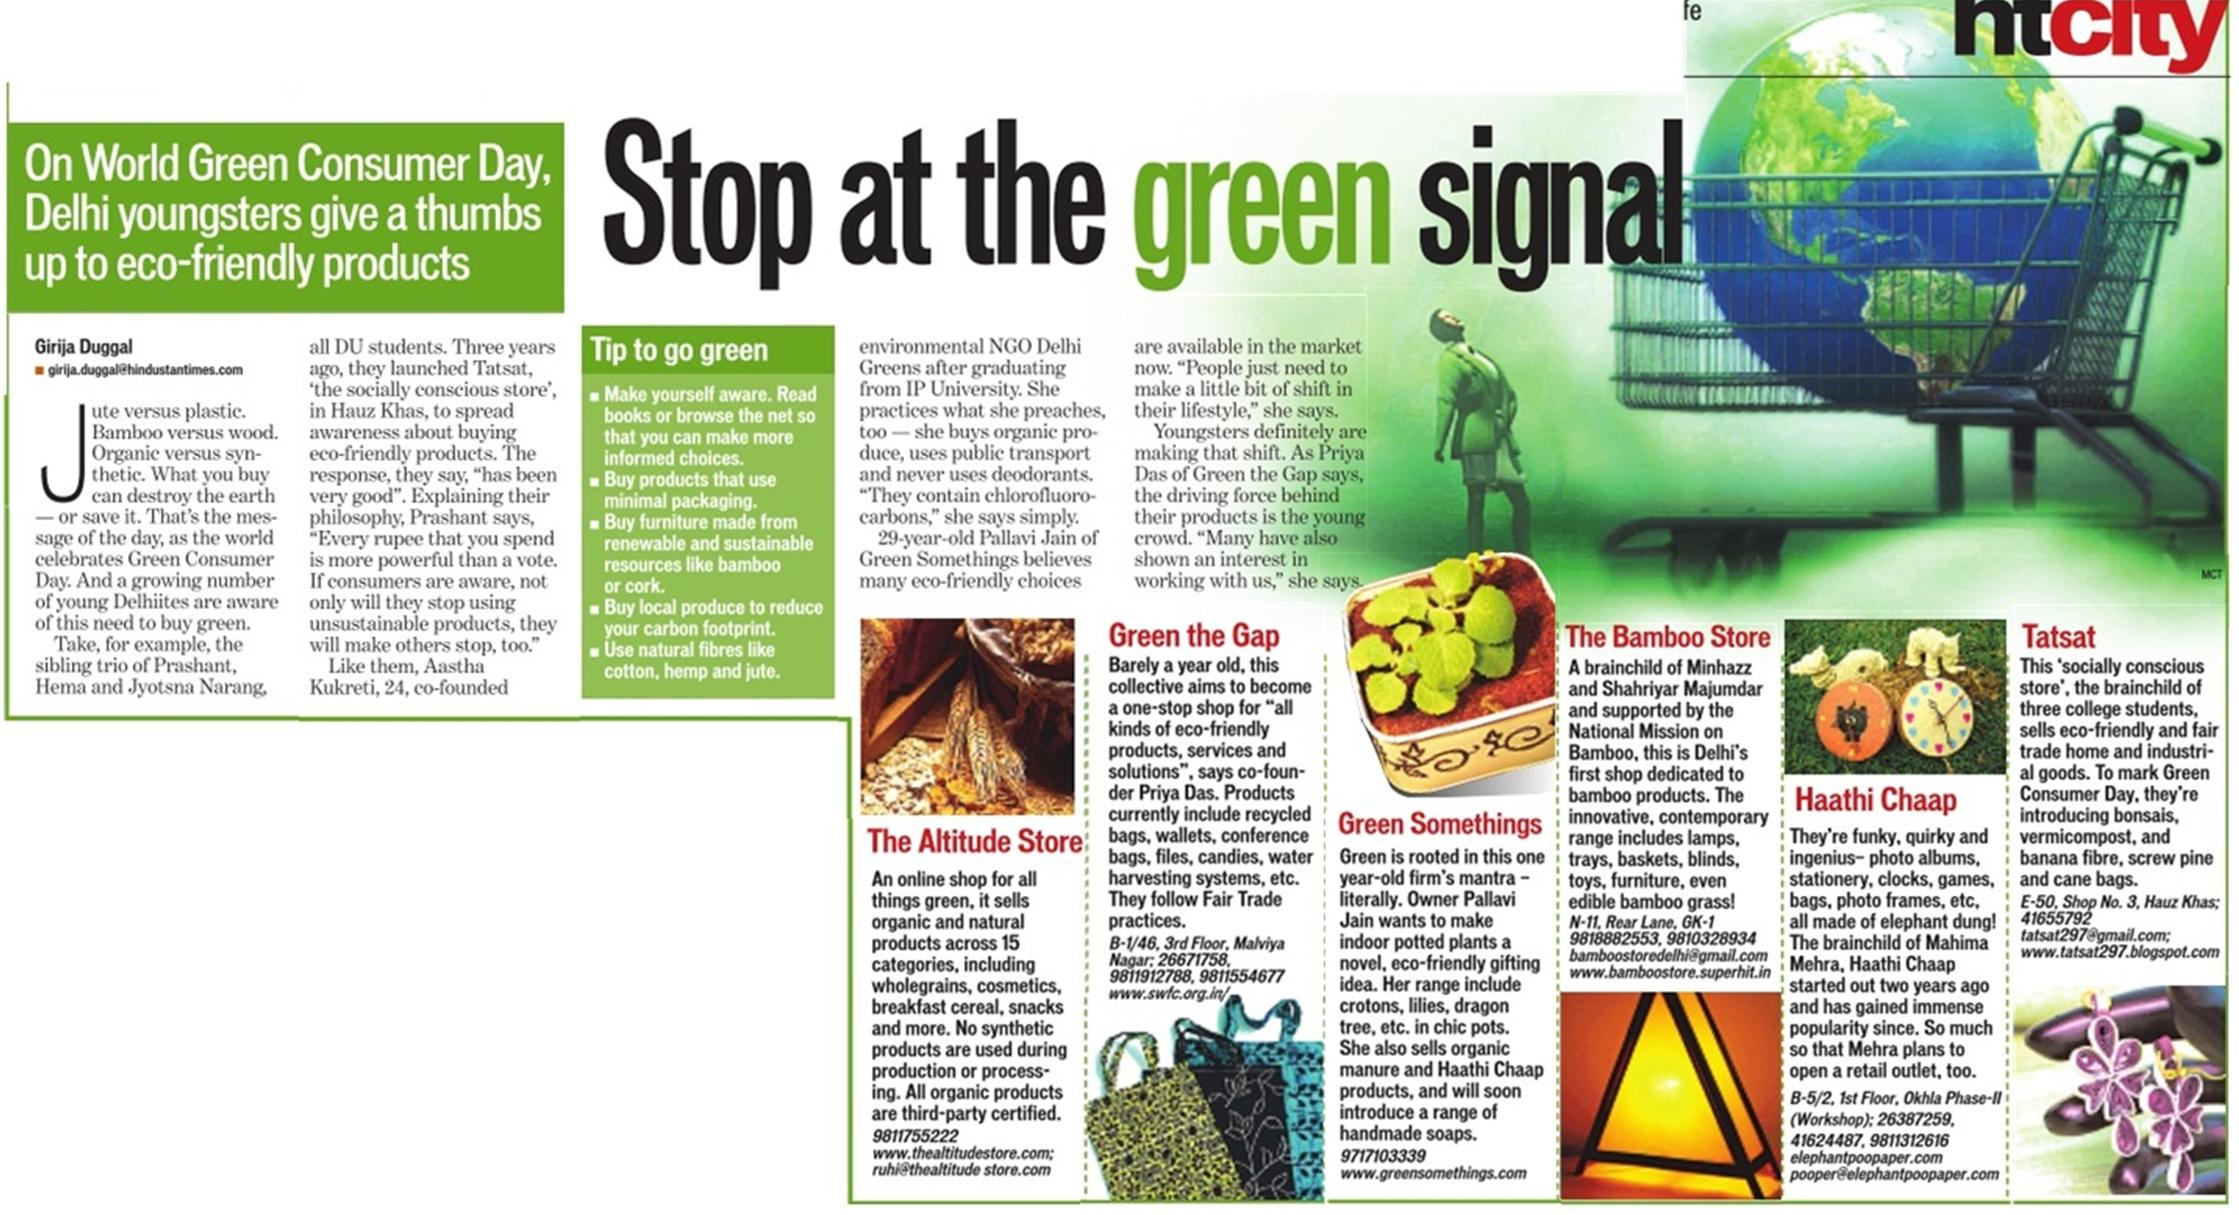 stop-at-the-green-signal